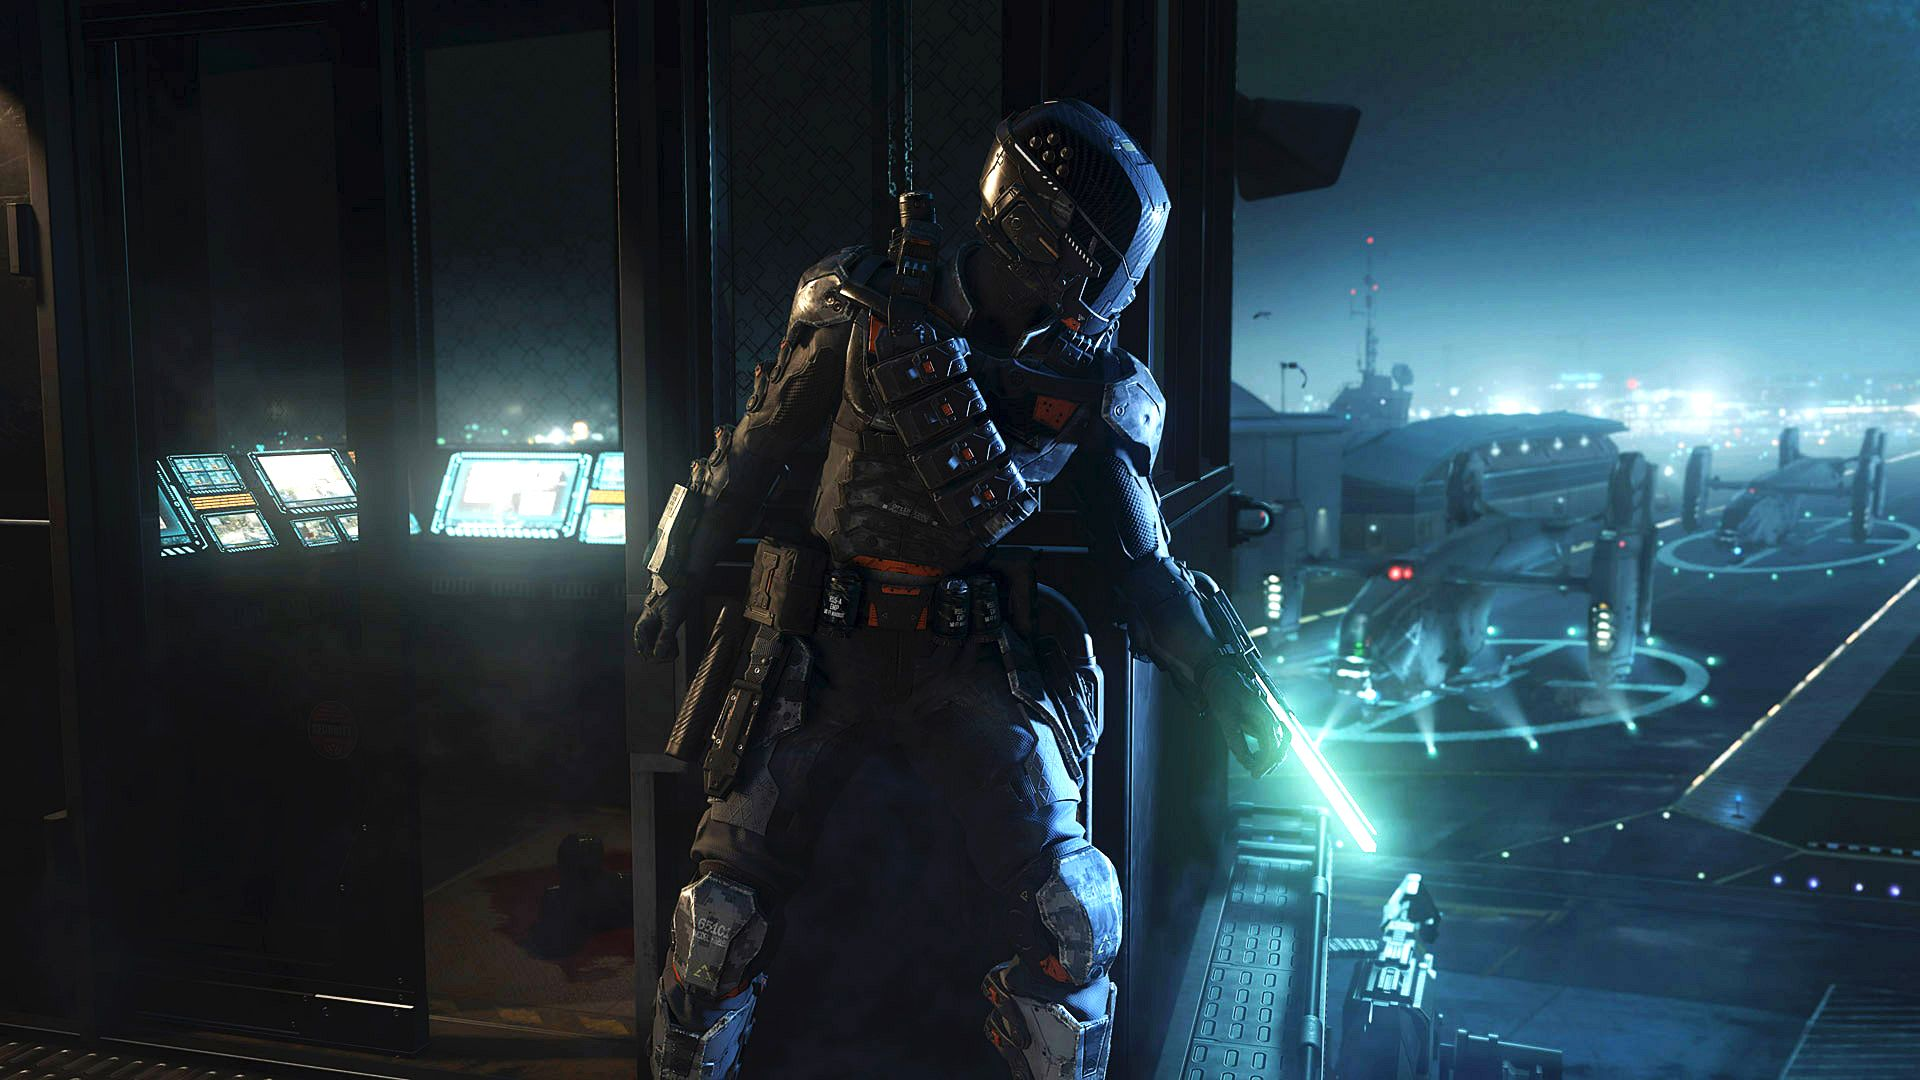 Cod Black Ops 3 Specialist Spectre Games Call Duty